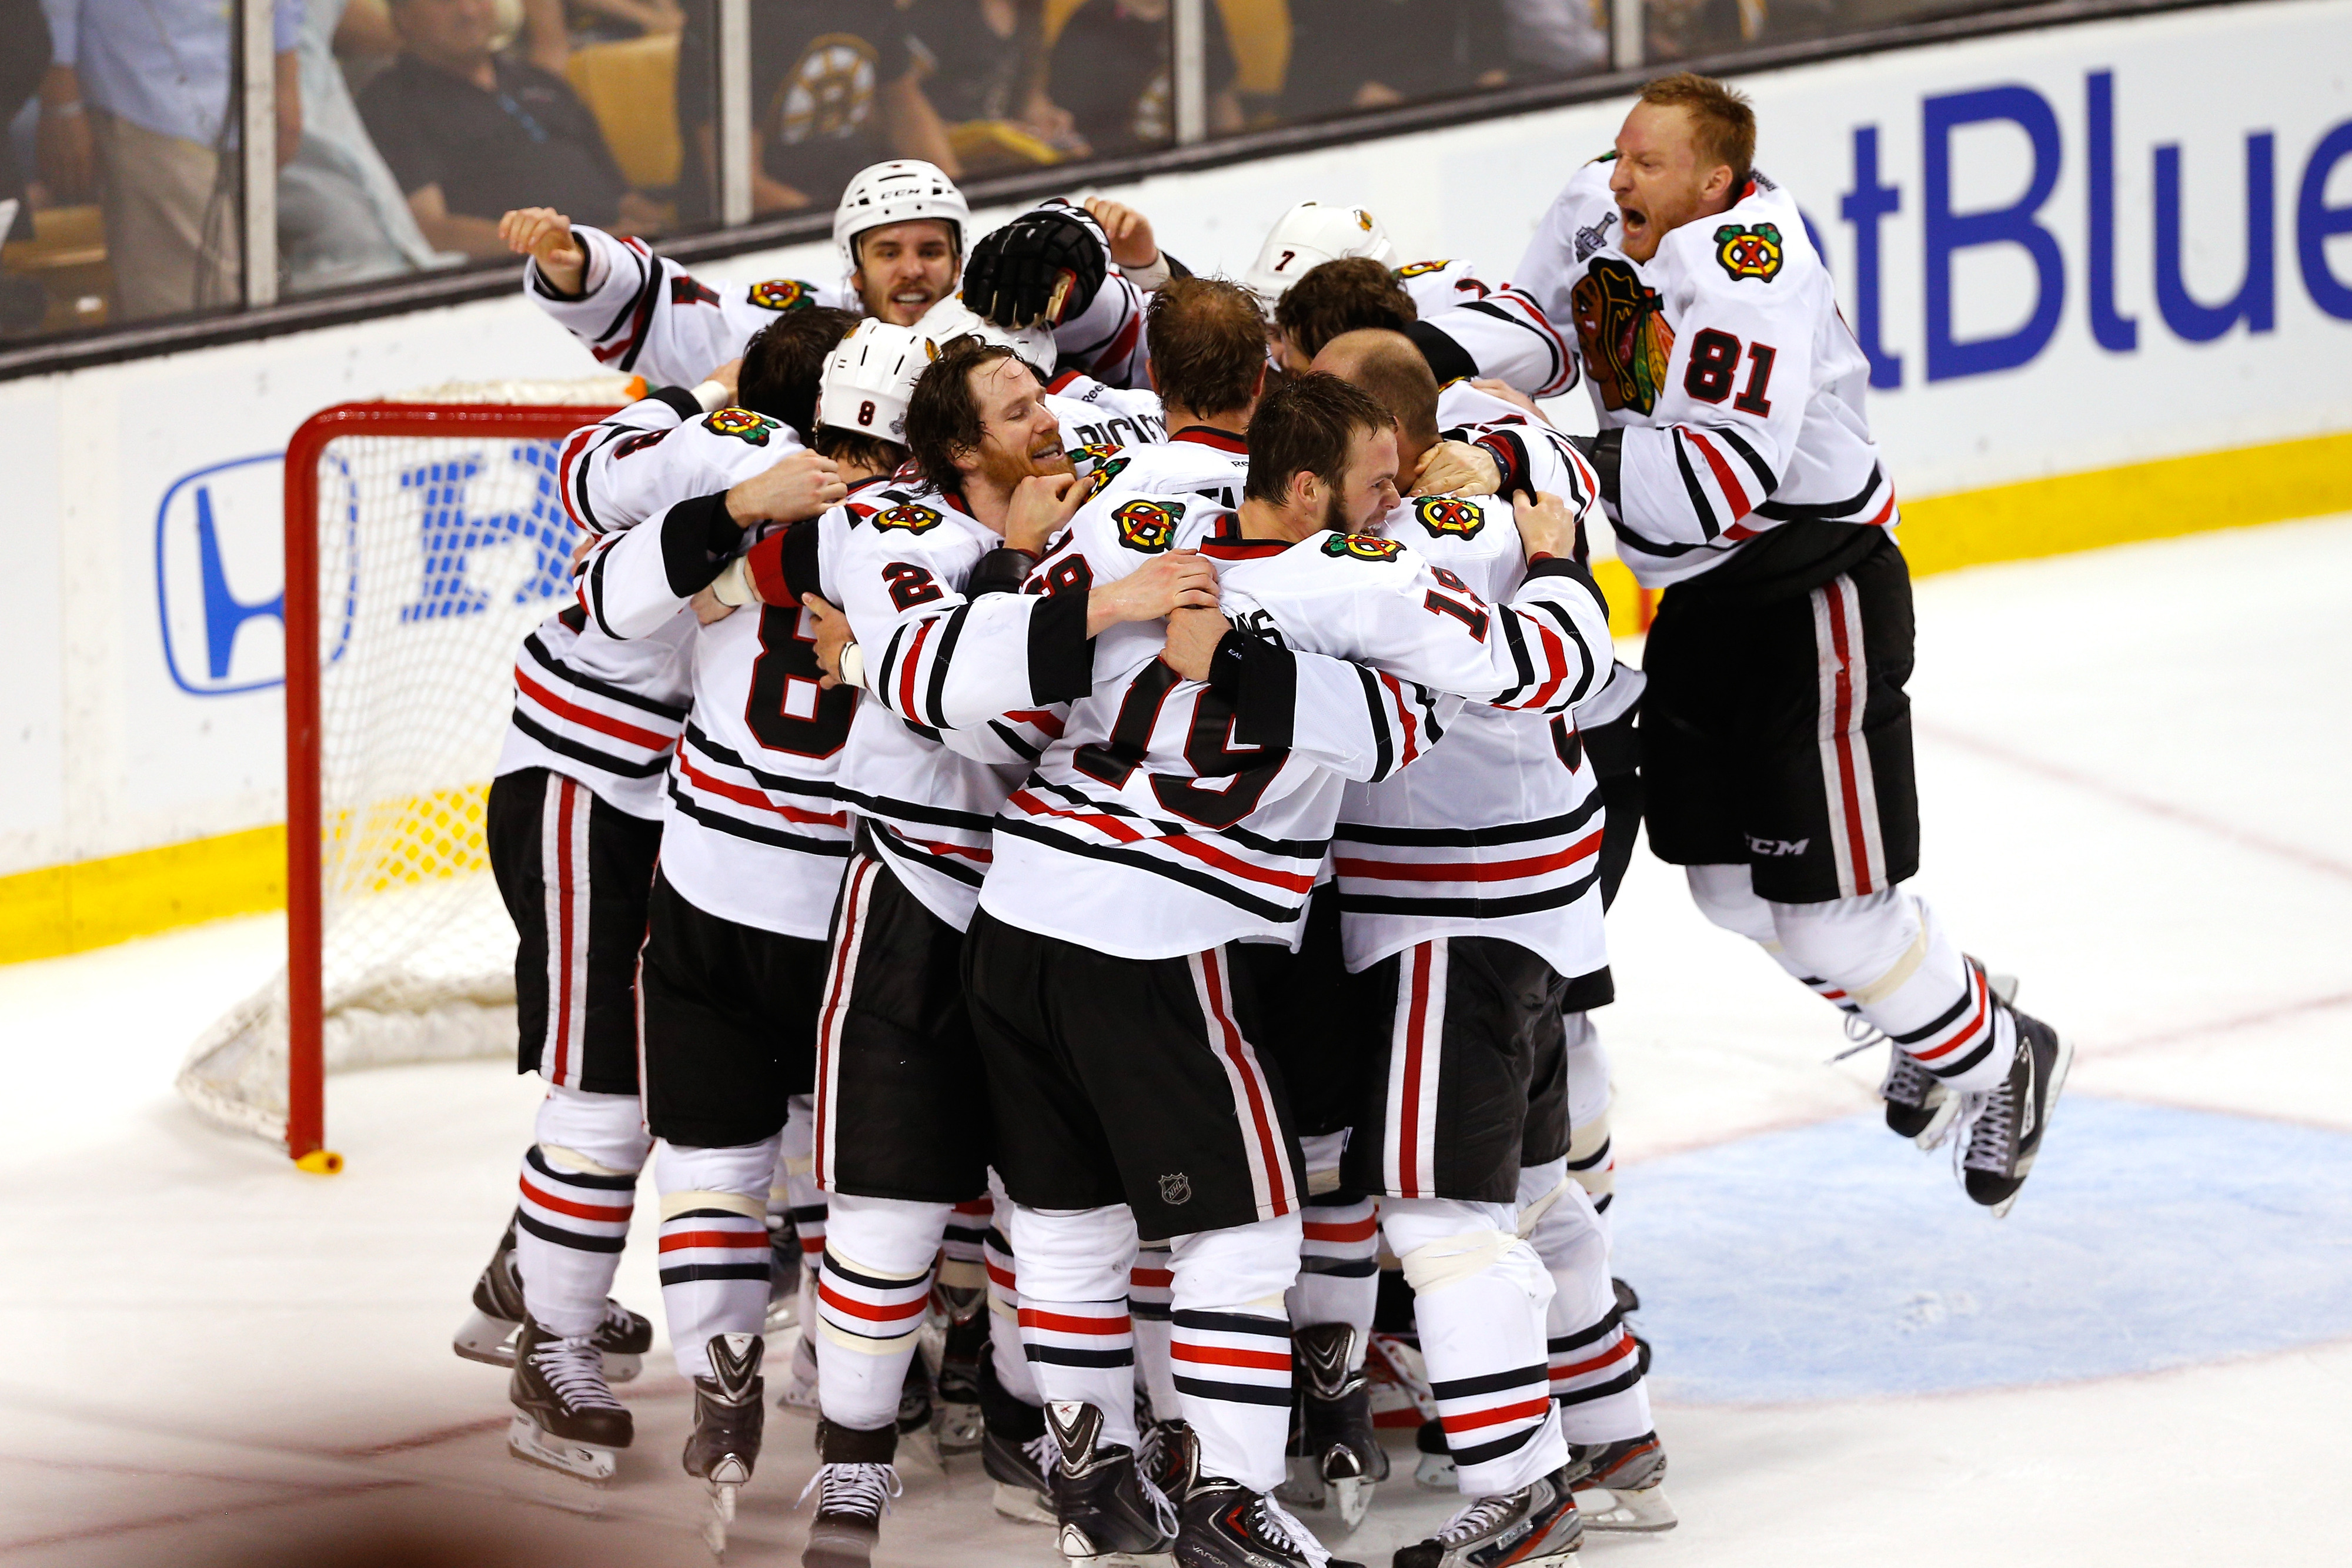 If you beat everyone except Anaheim, jump up and down for joy!